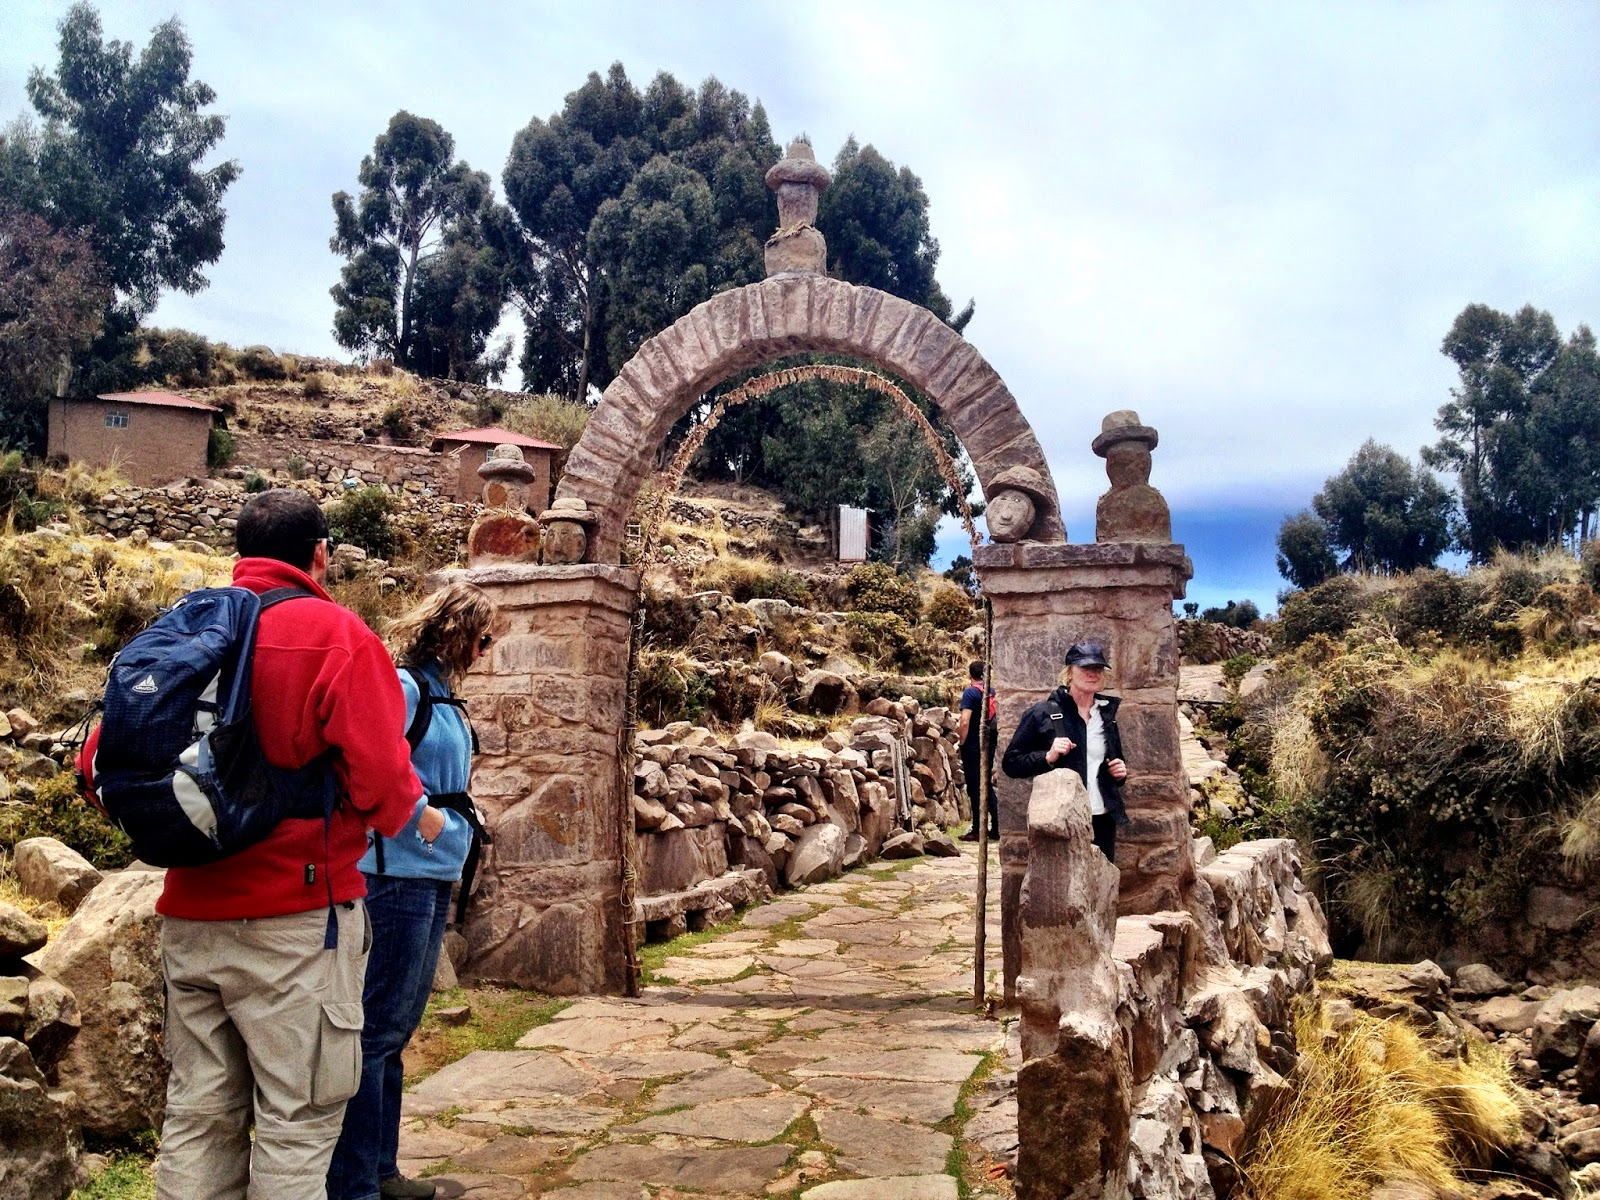 The arch leading to the main square - Taquile Island